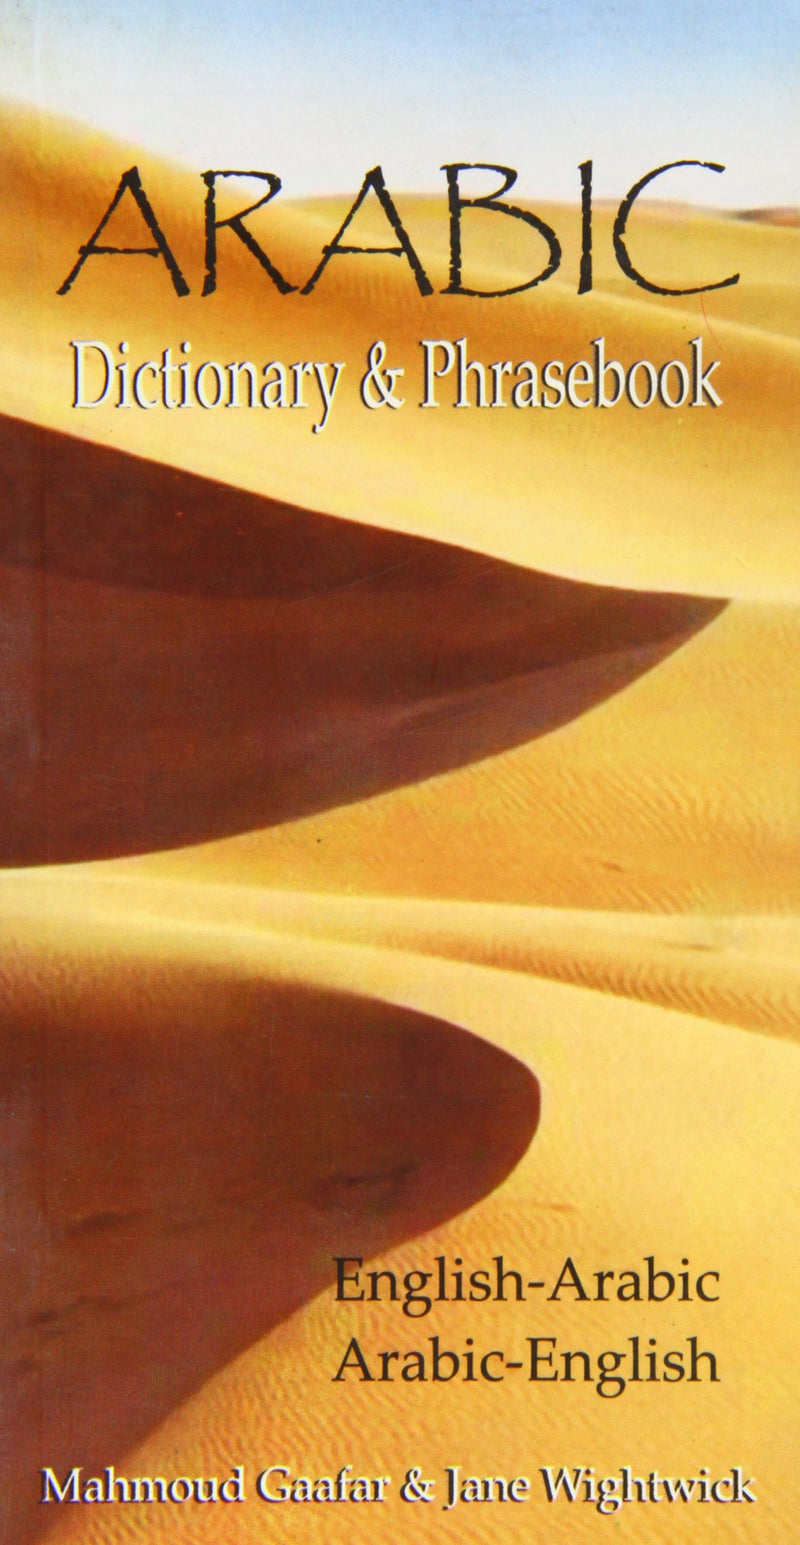 Arabic Dictionary (Arabic)